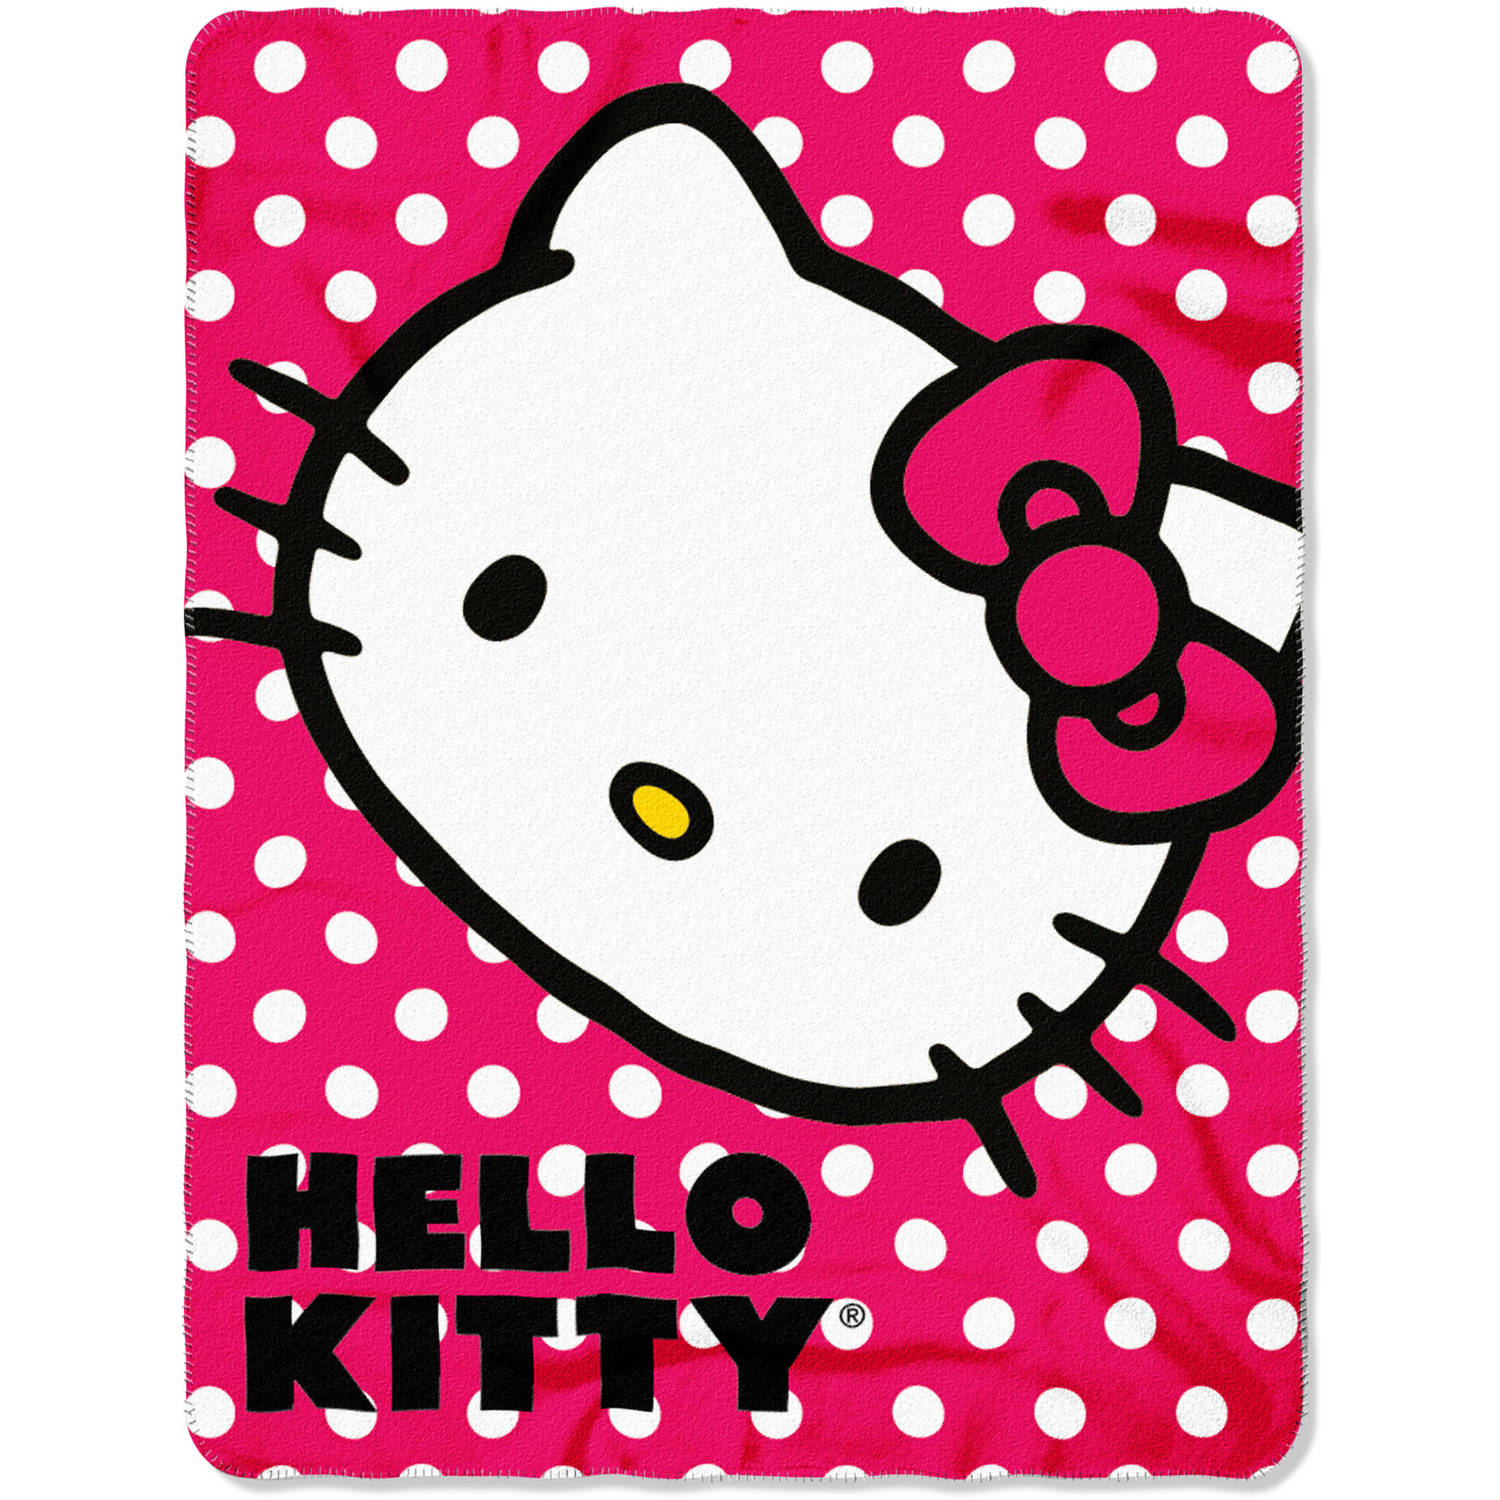 "Sanrio's Hello Kitty ""Polka Dot Kitty"" 45"" x 60"" Fleece Throw"